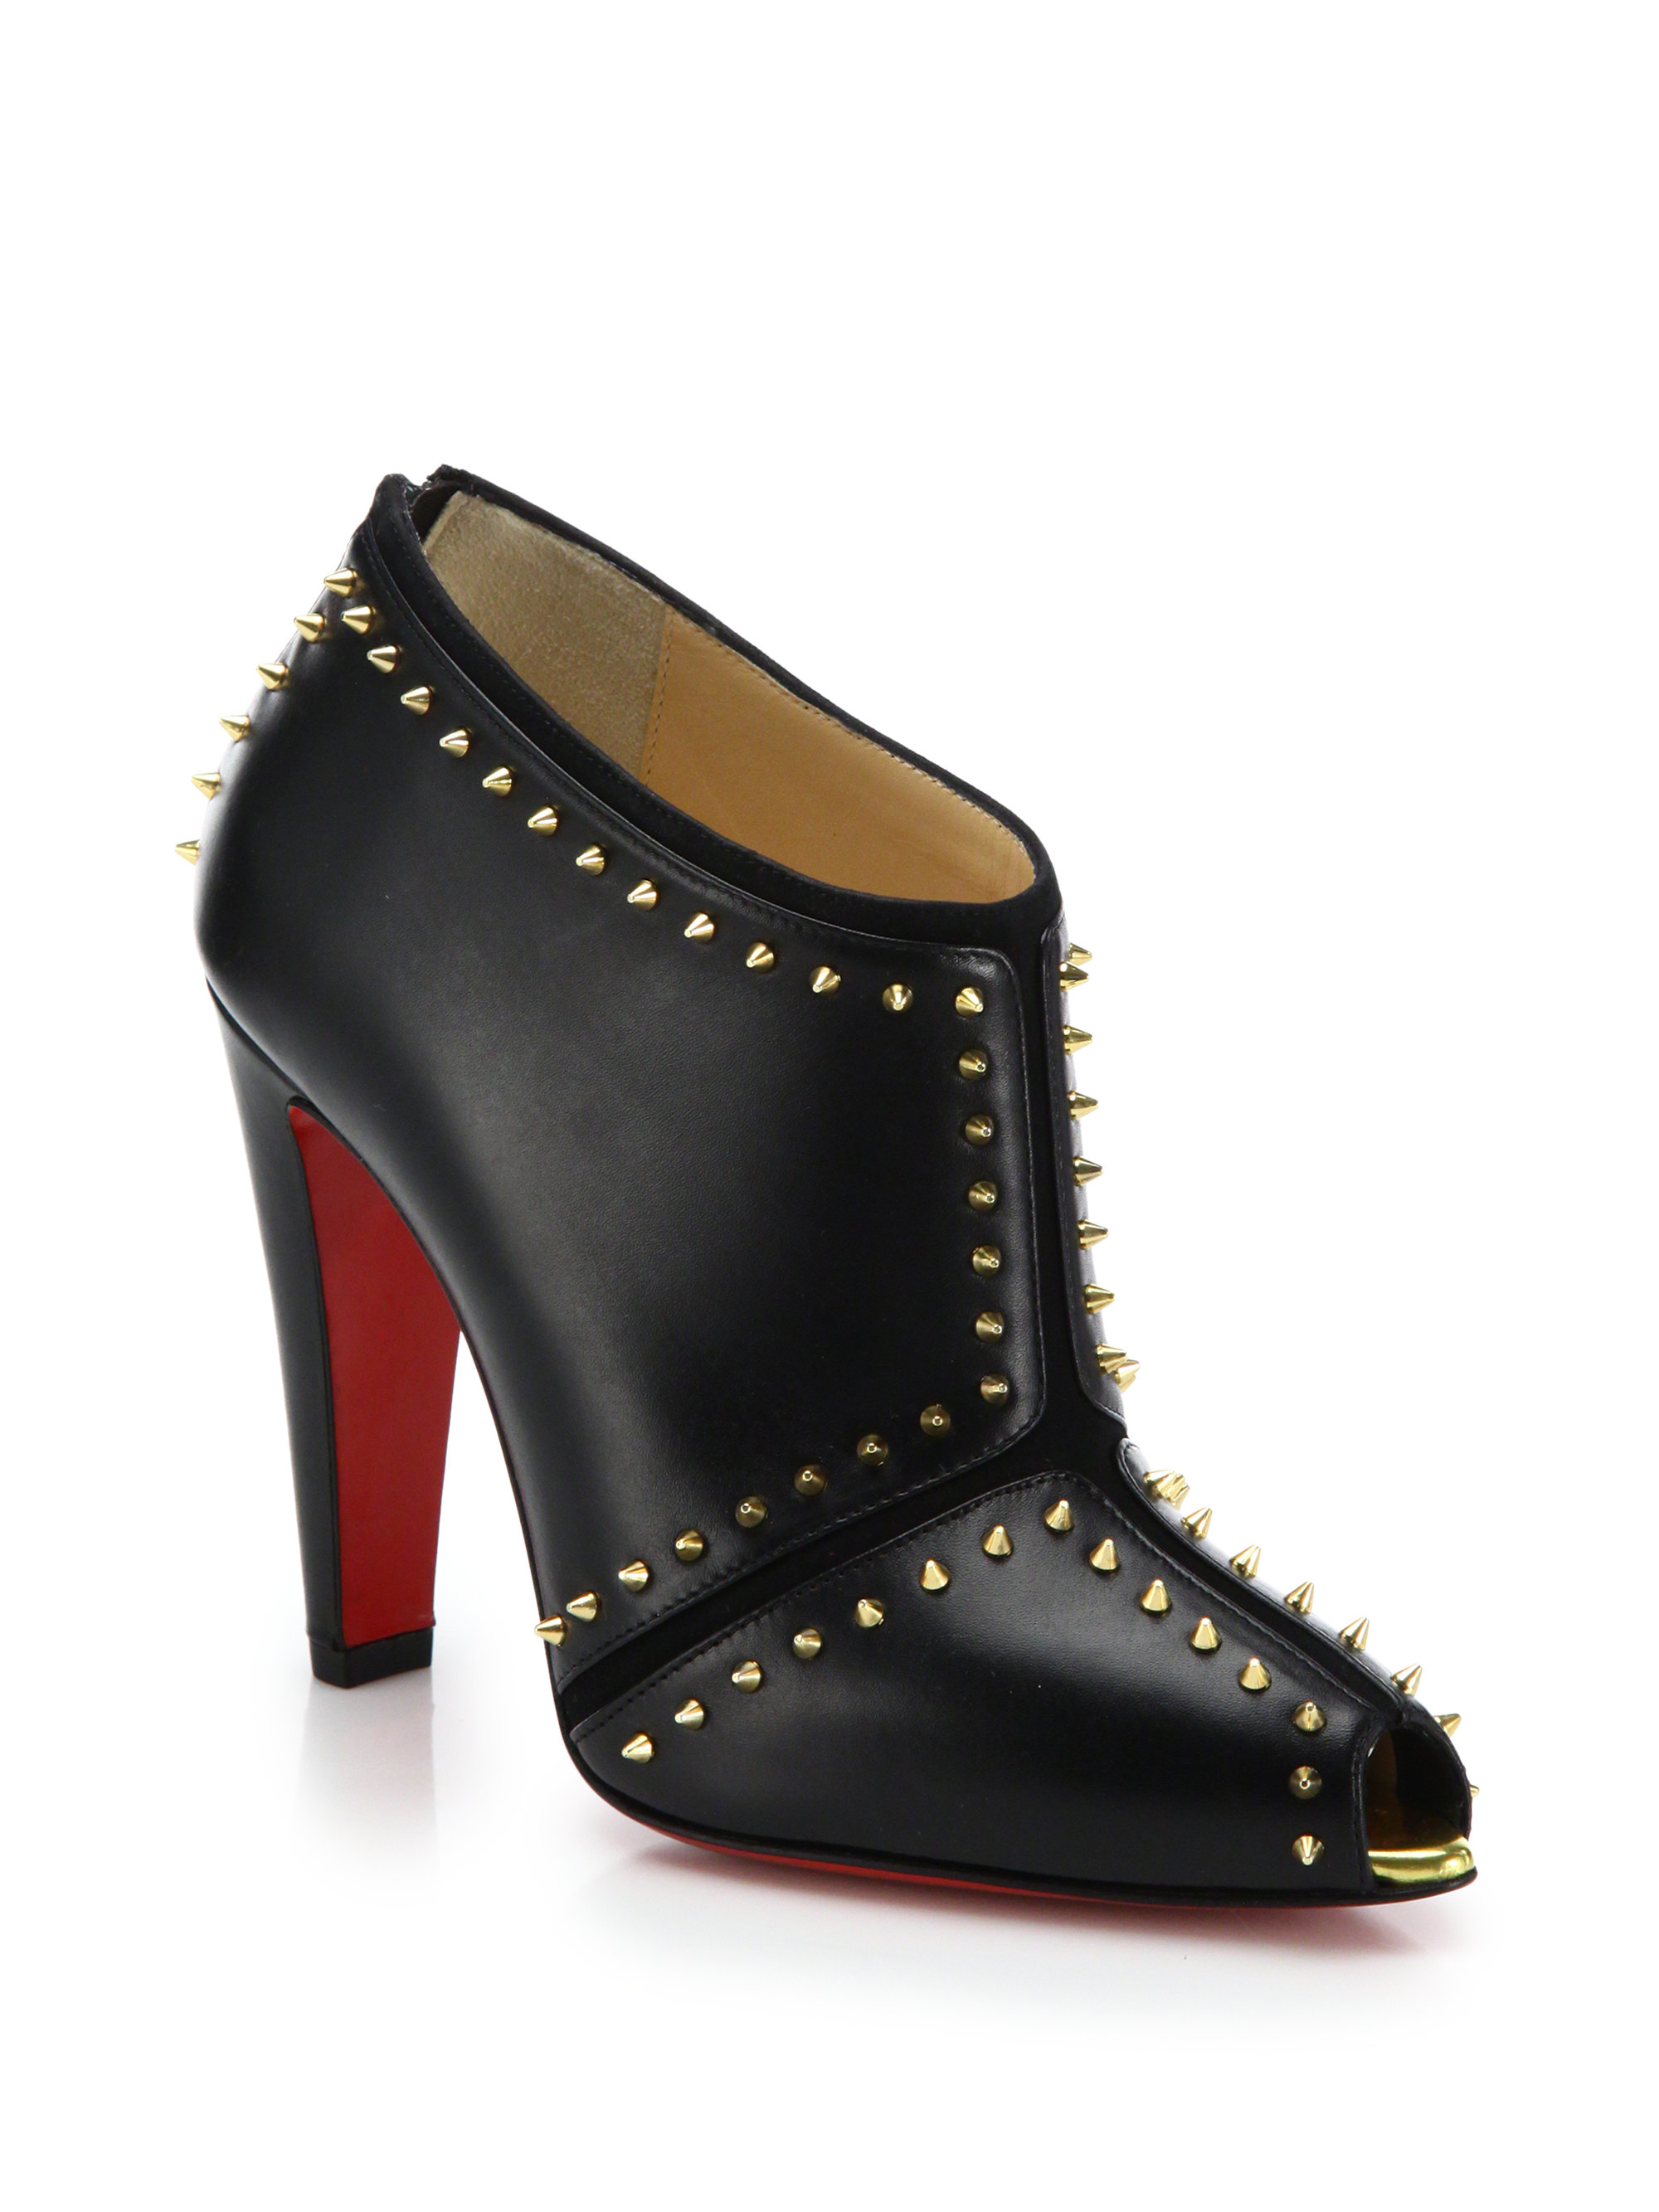 1ffc8543ba8d Lyst - Christian Louboutin Studded Leather Peep-toe Booties in Black